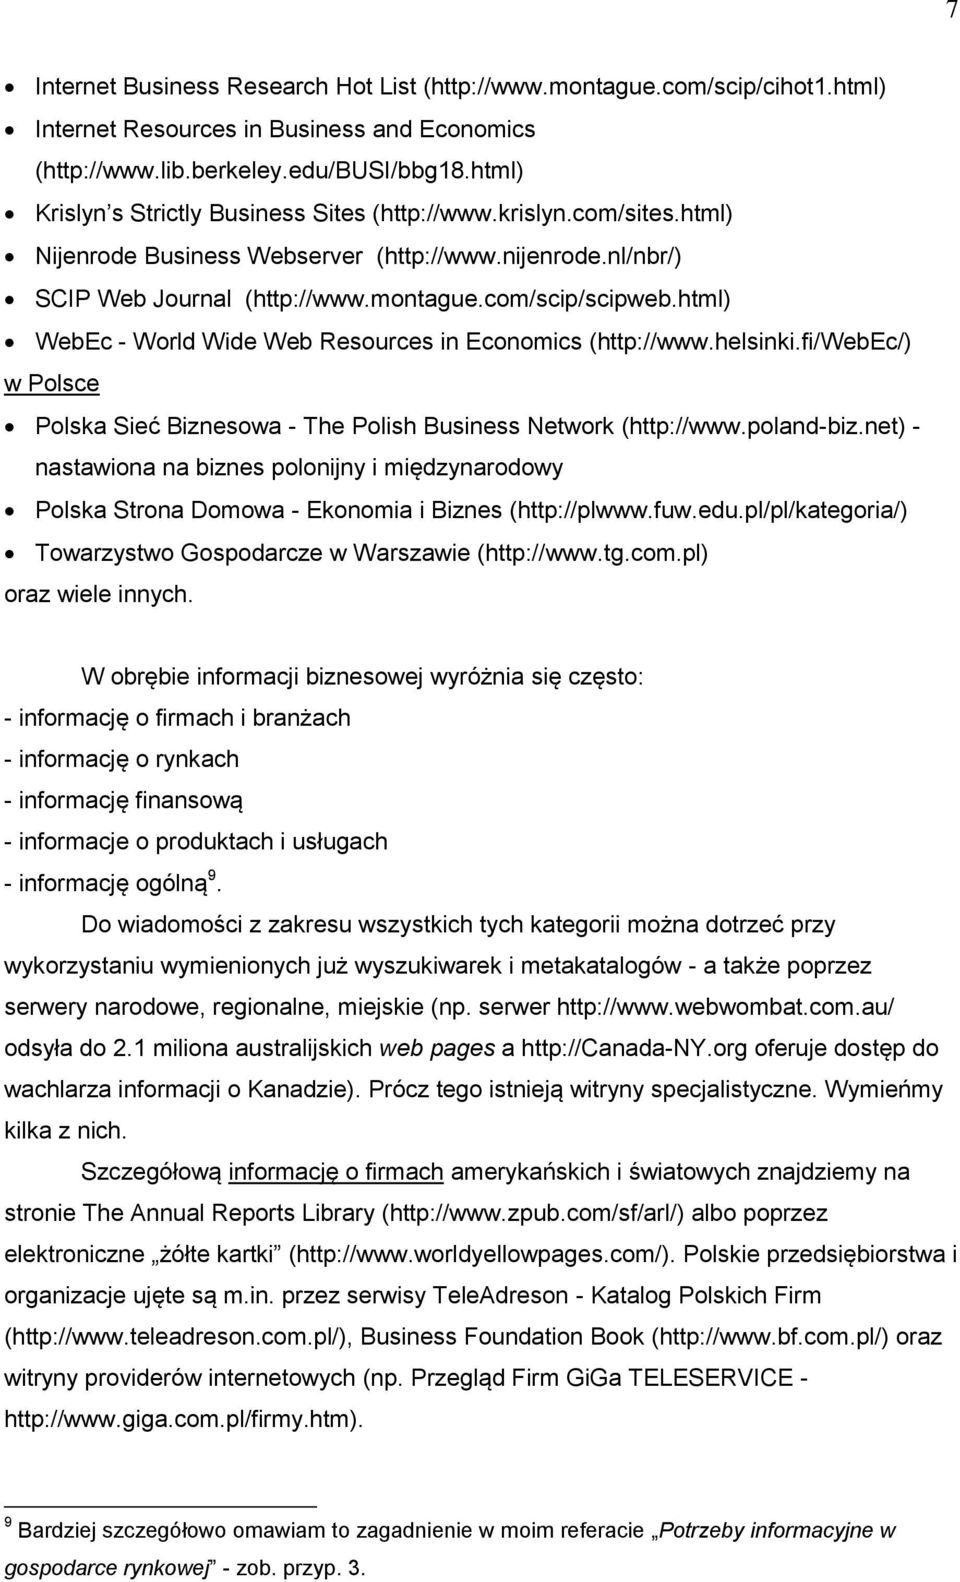 html) WebEc - World Wide Web Resources in Economics (http://www.helsinki.fi/webec/) w Polsce Polska Sieć Biznesowa - The Polish Business Network (http://www.poland-biz.